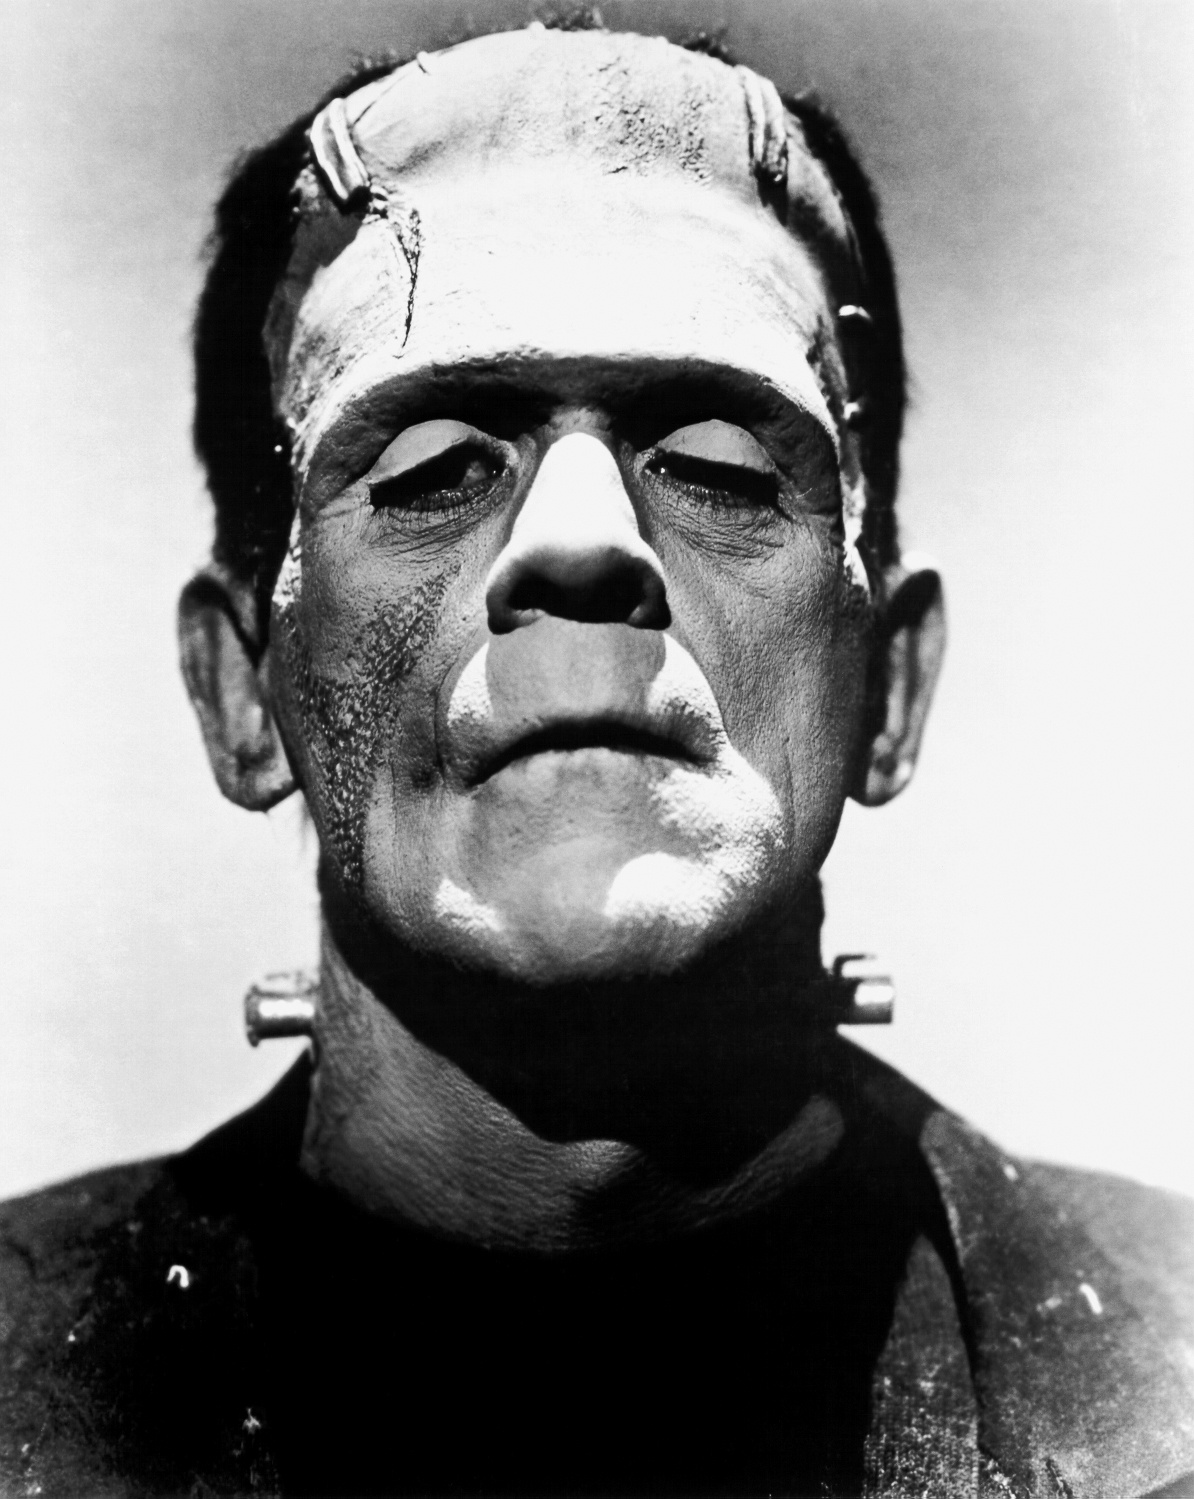 The Debunker: Was the Monster in Mary Shelley's Frankenstein Built from Corpses? at https://www.woot.com/blog/post/the-debunker-was-the-monster-in-mary-shelleys-frankenstein-built-from-corpses